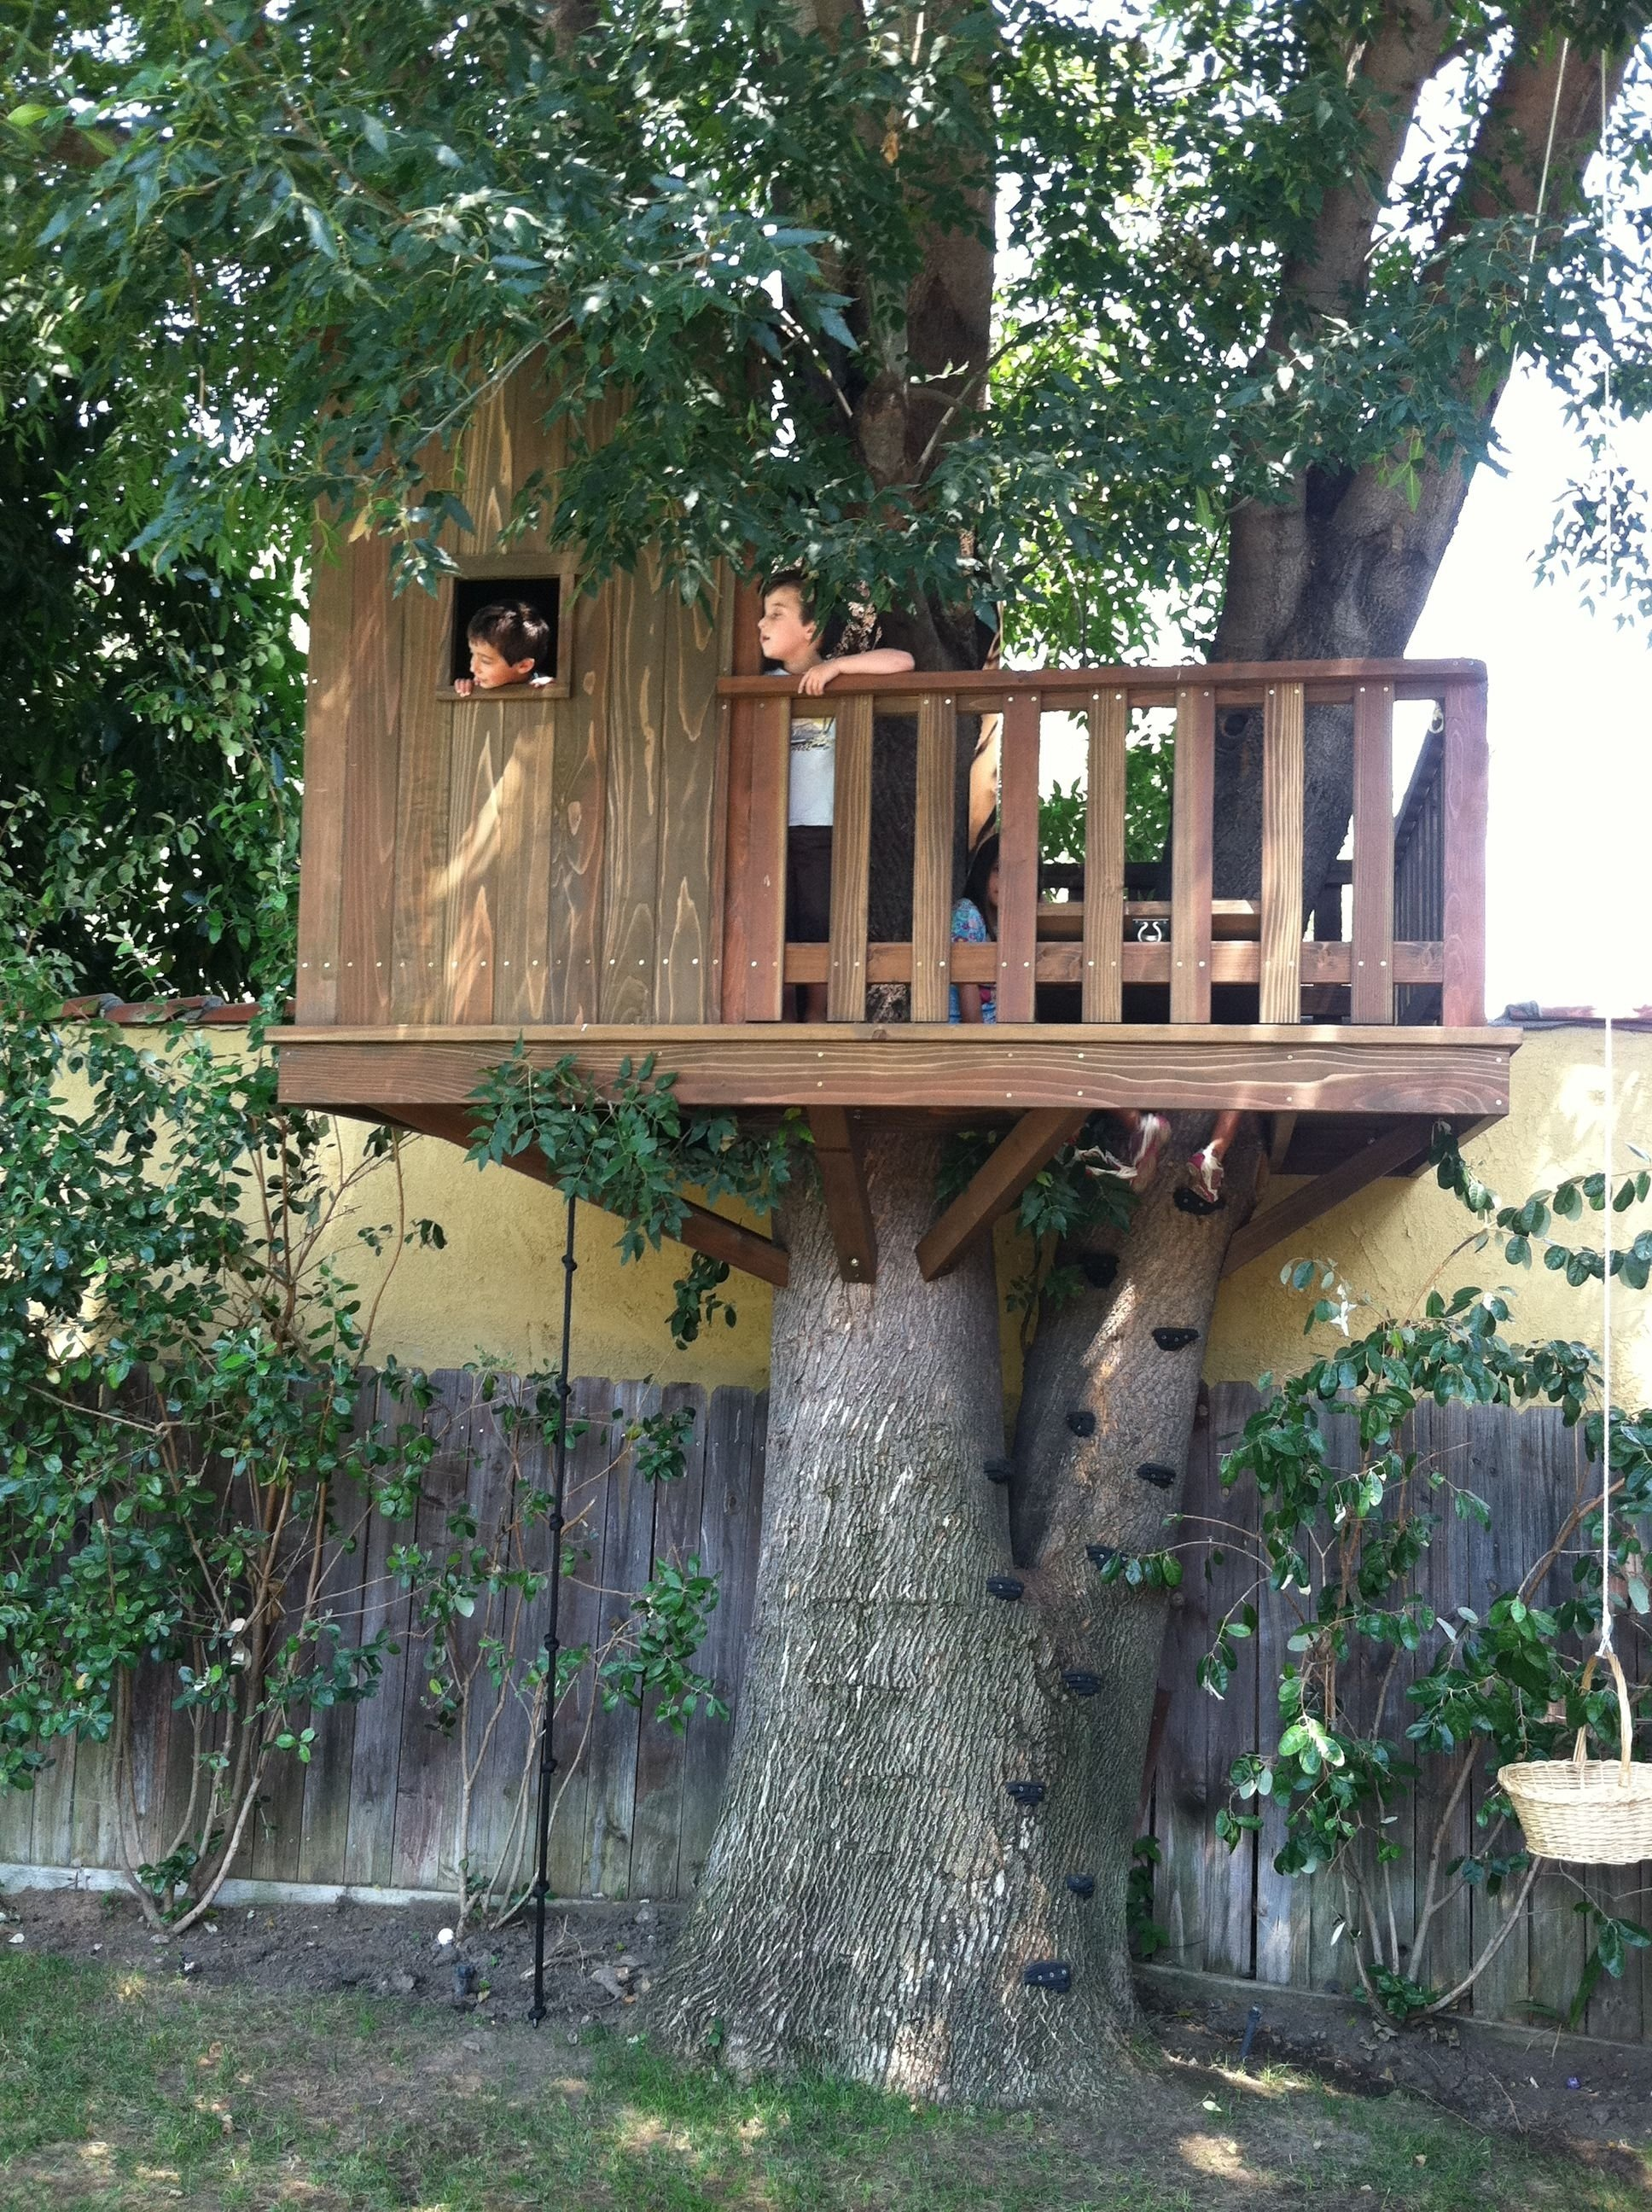 10 Wonderful Tree House Ideas For Kids why are tree houses so awesome they are kids only they are small 2020